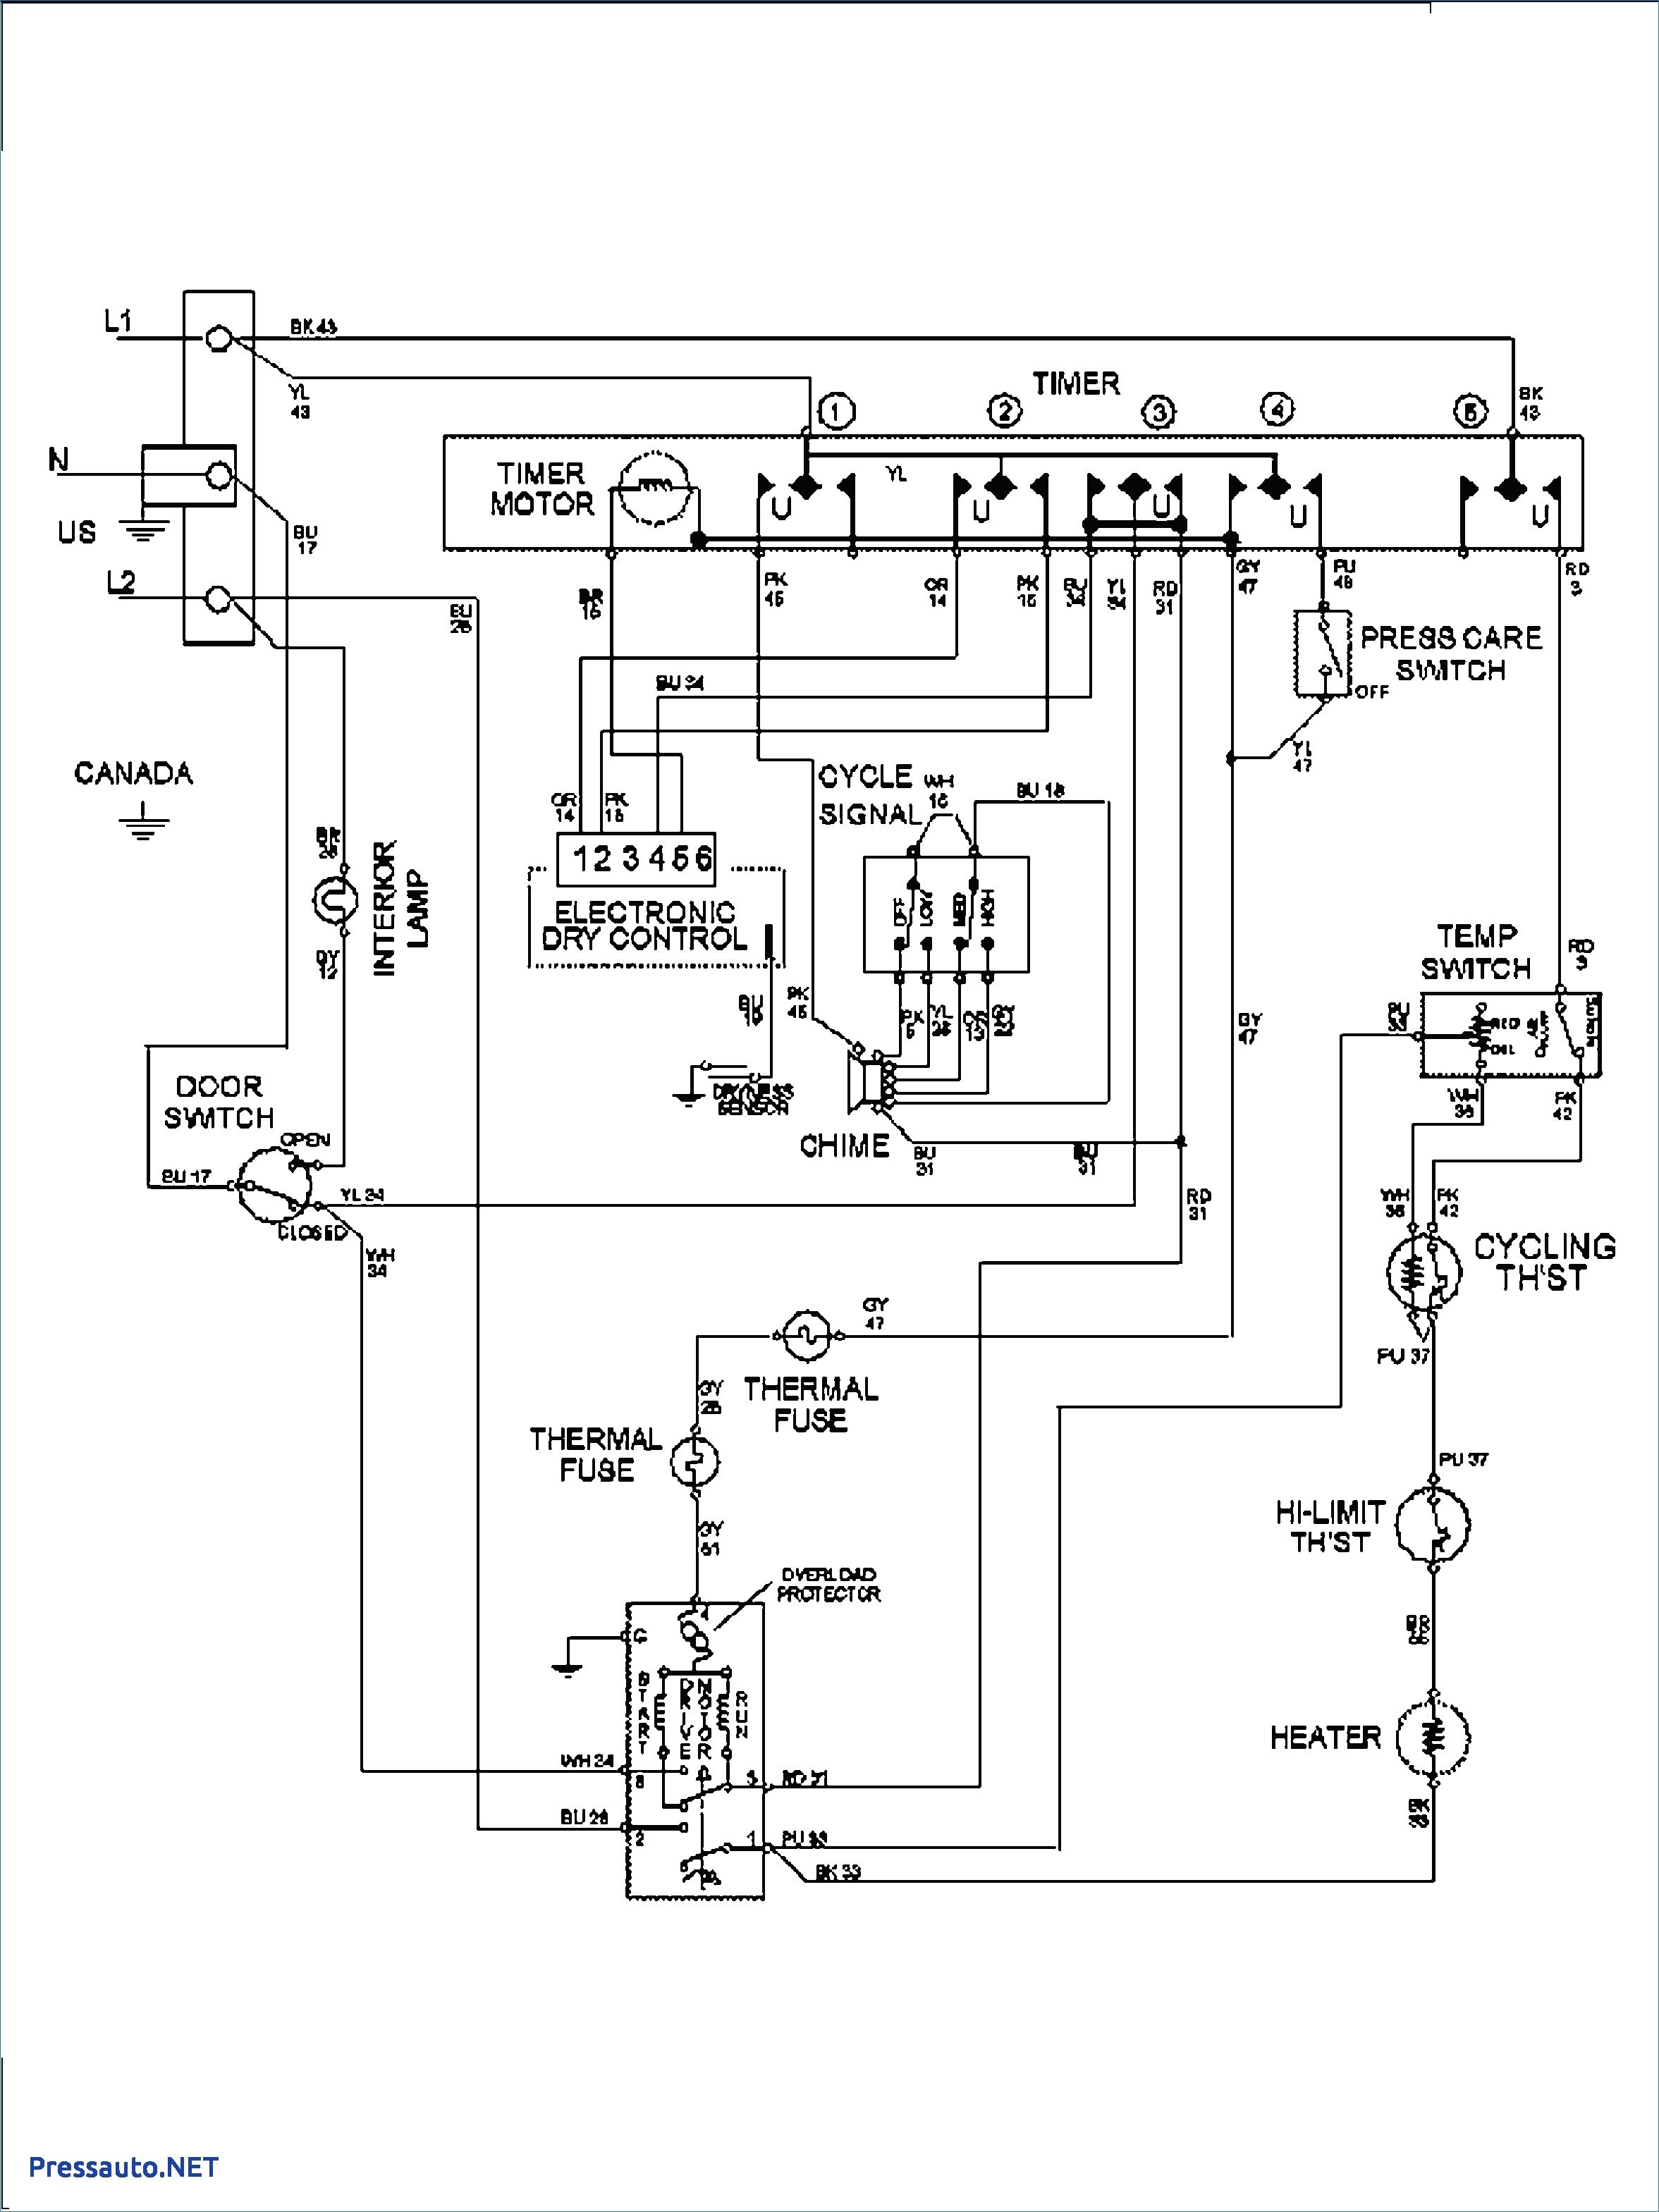 dryer schematic 220v dryer schematic wiring #11